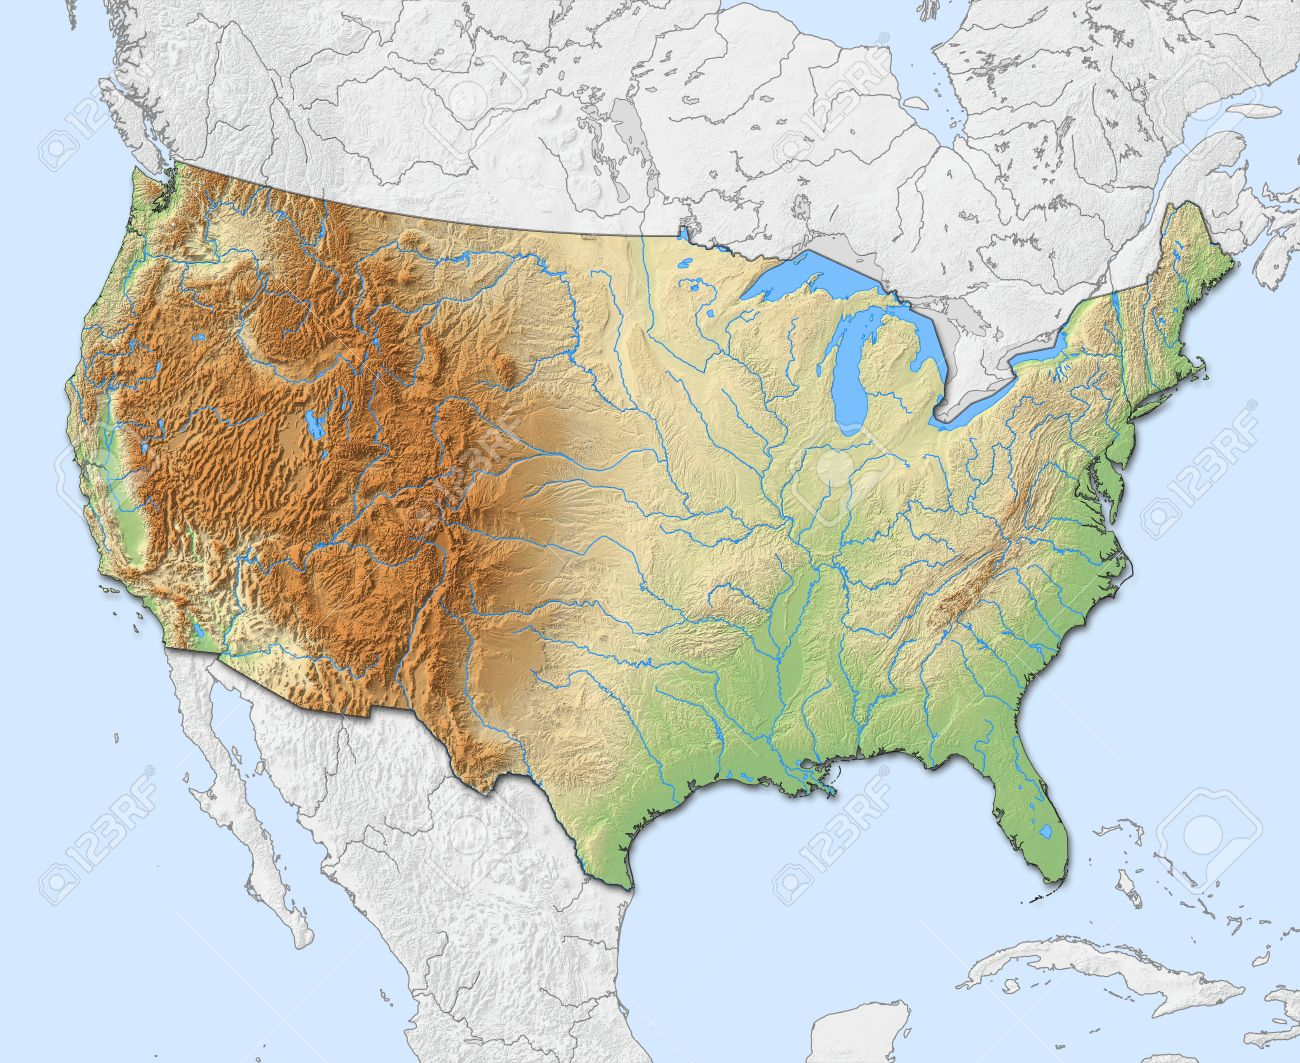 Relief Map Of United States.Relief Map Of United States With Shaded Relief Nearby Countries